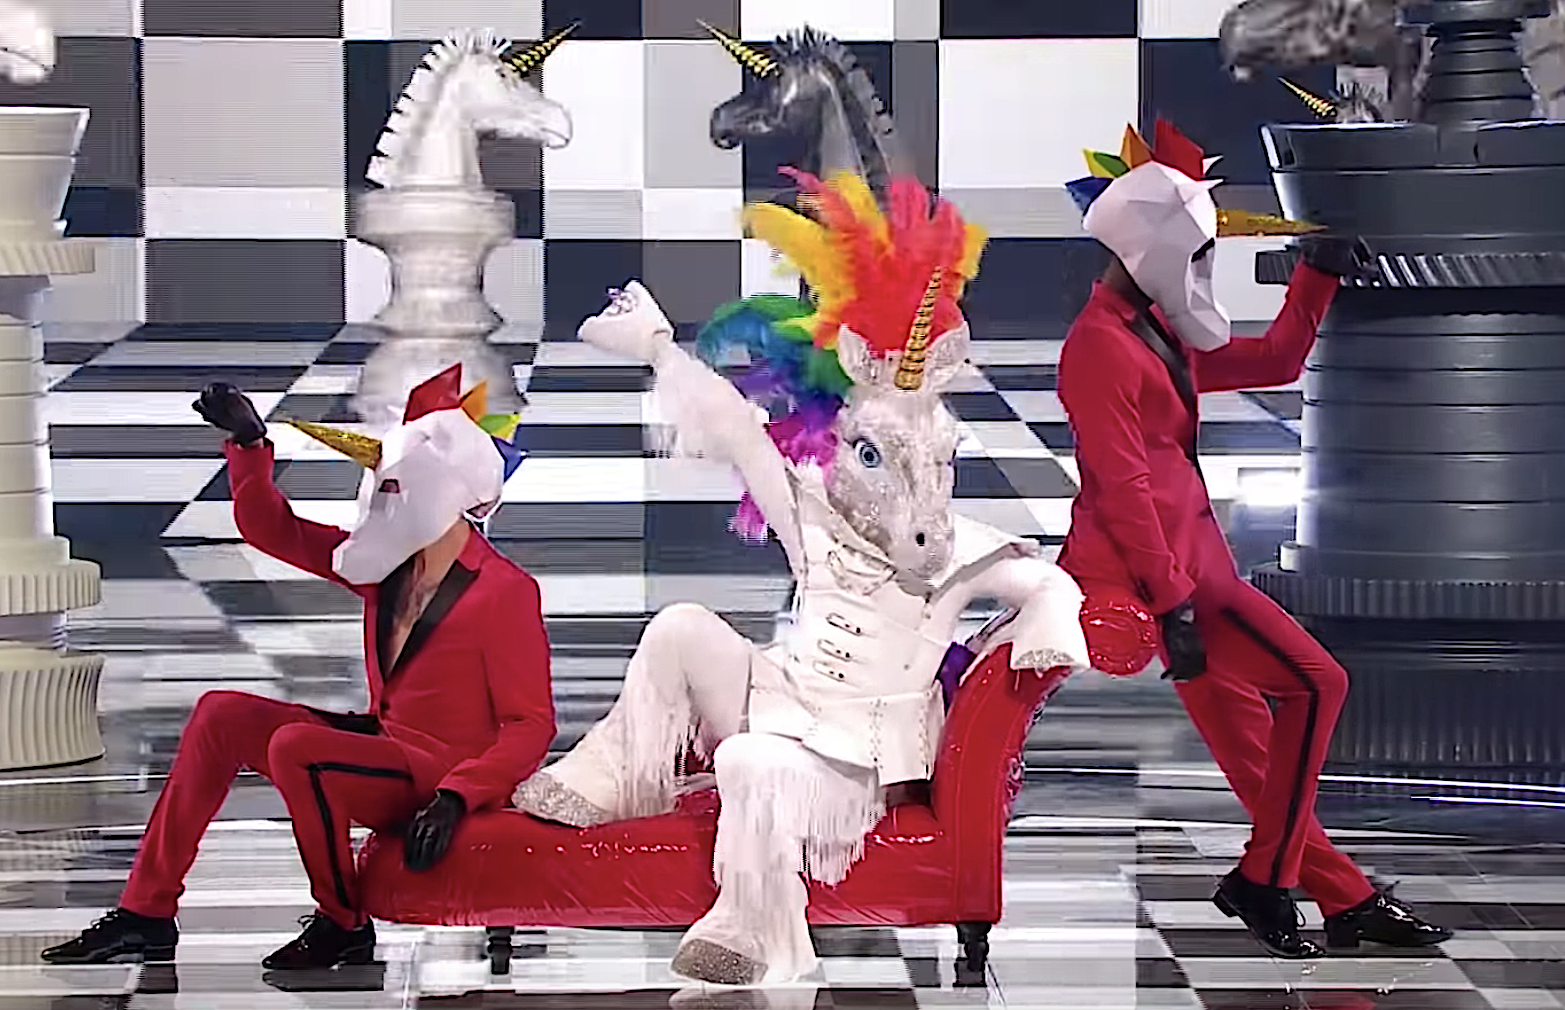 Anglomania: Why 'The Masked Singer U.K.' is cooler and crazier than the U.S. version